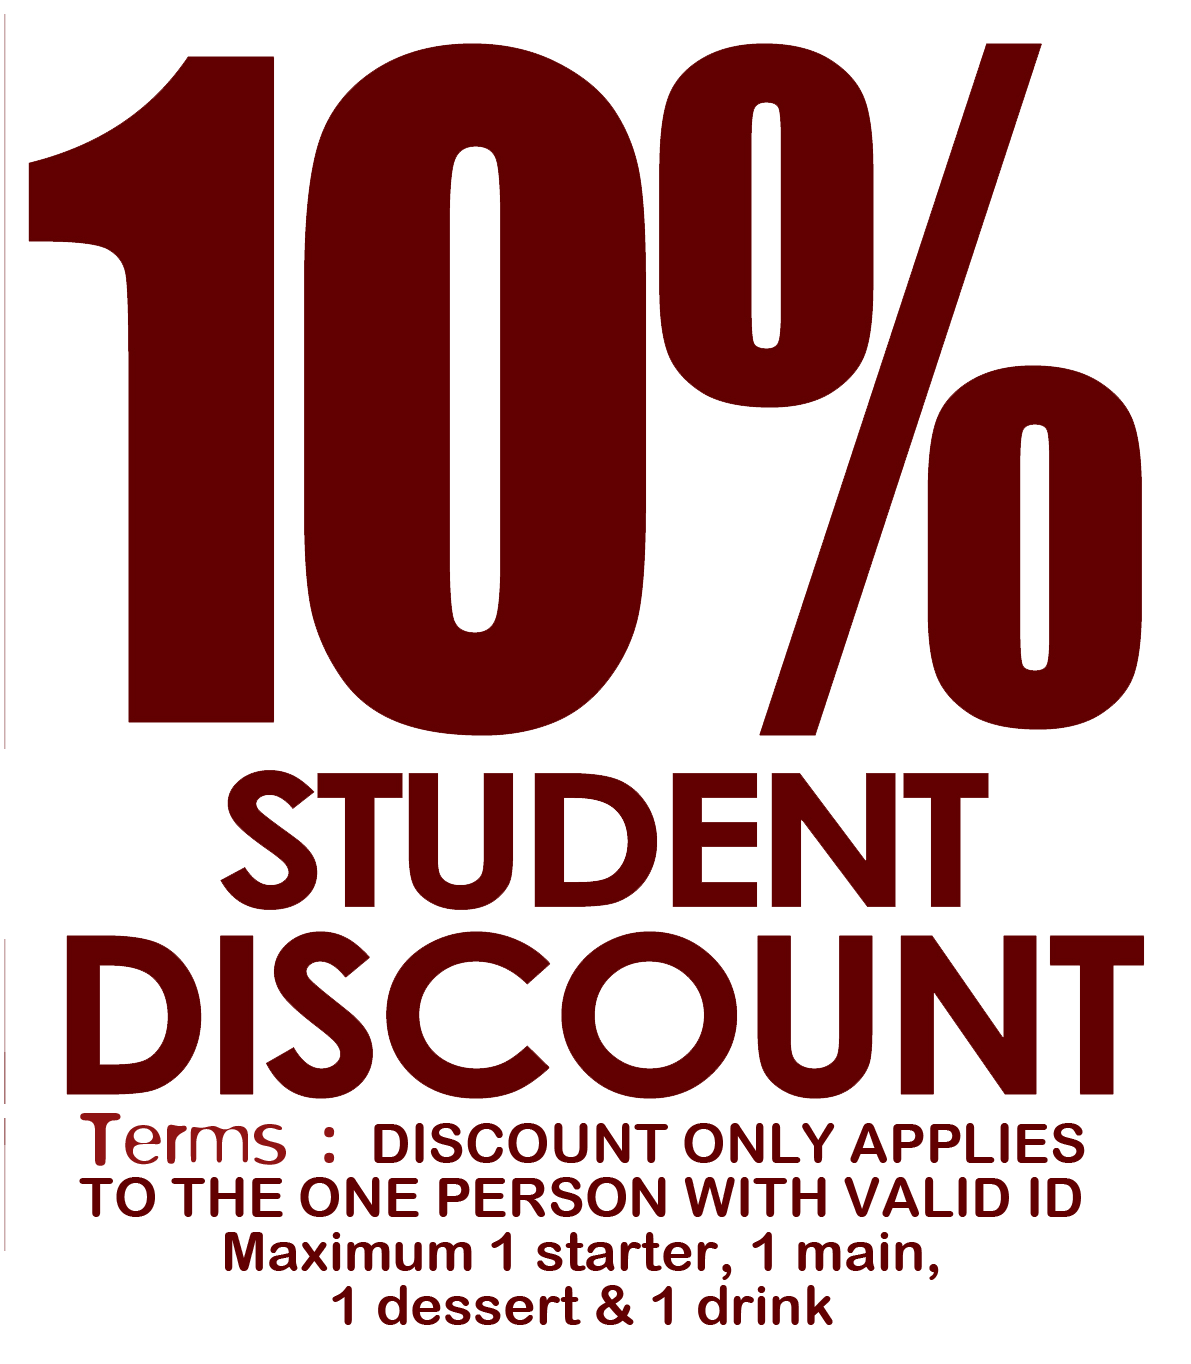 student-discountposter.png